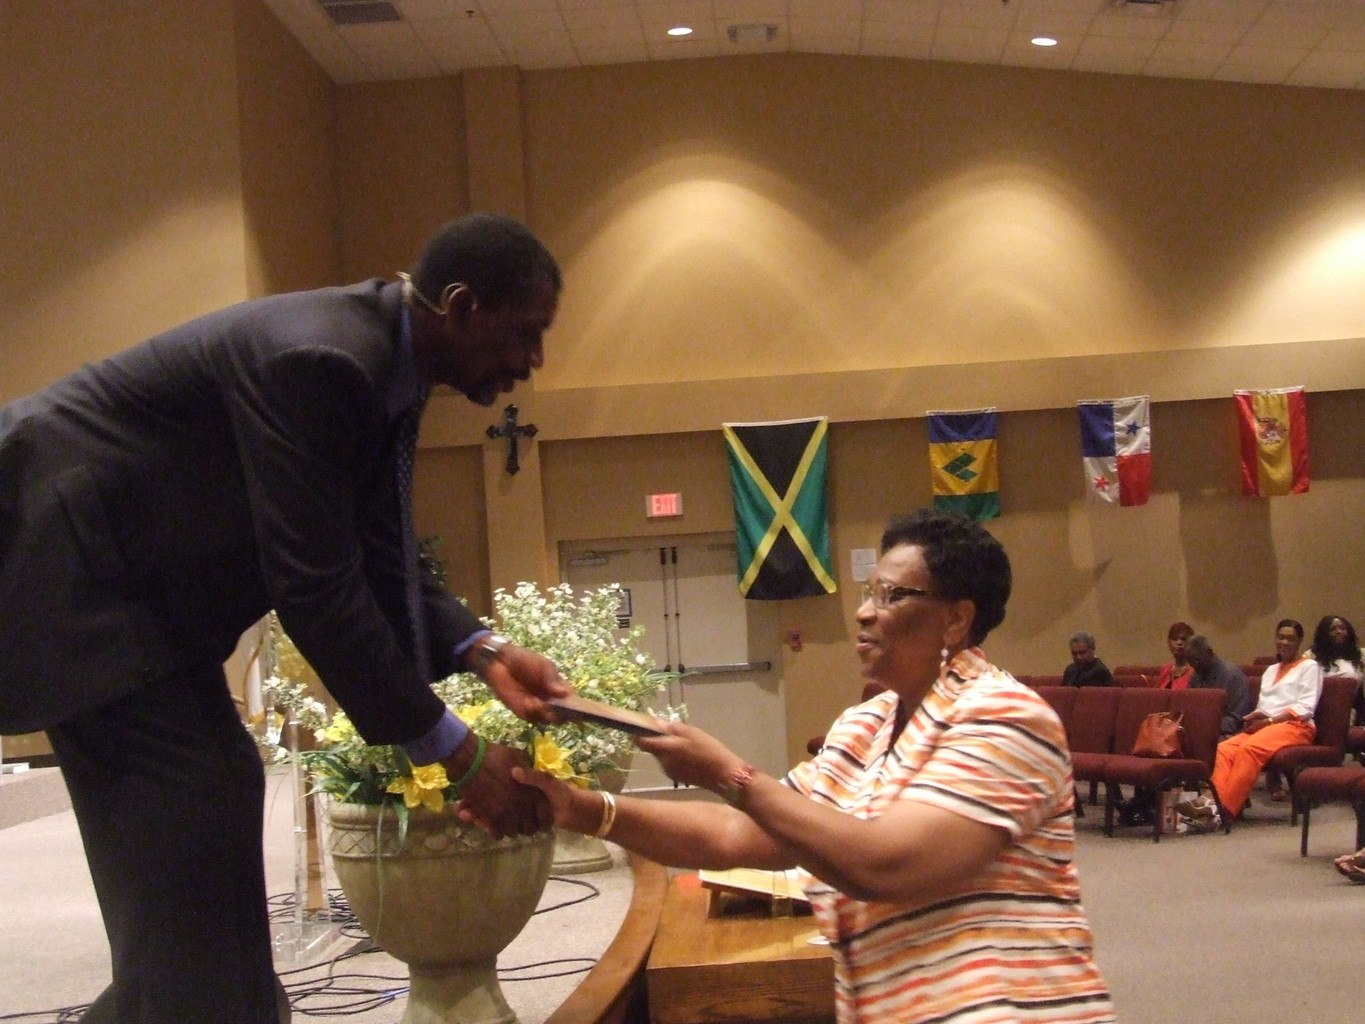 Pastor handing a gift to a lady